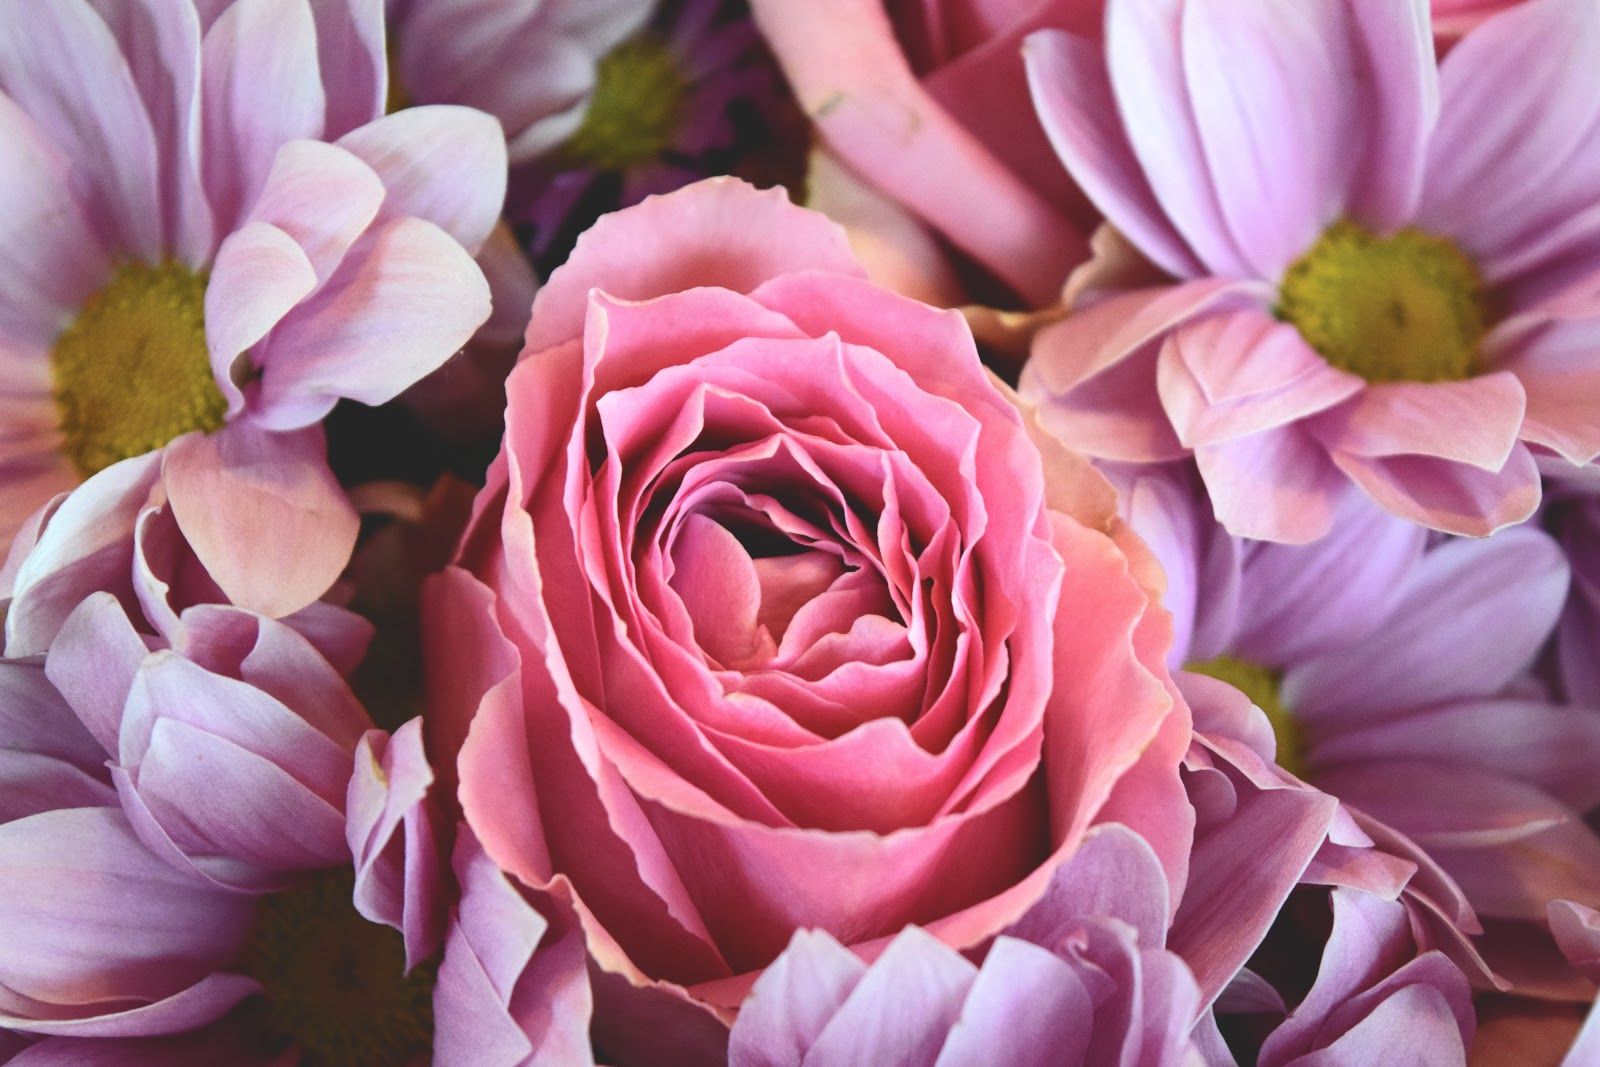 flowers-love-roses-pink-rose.jpg